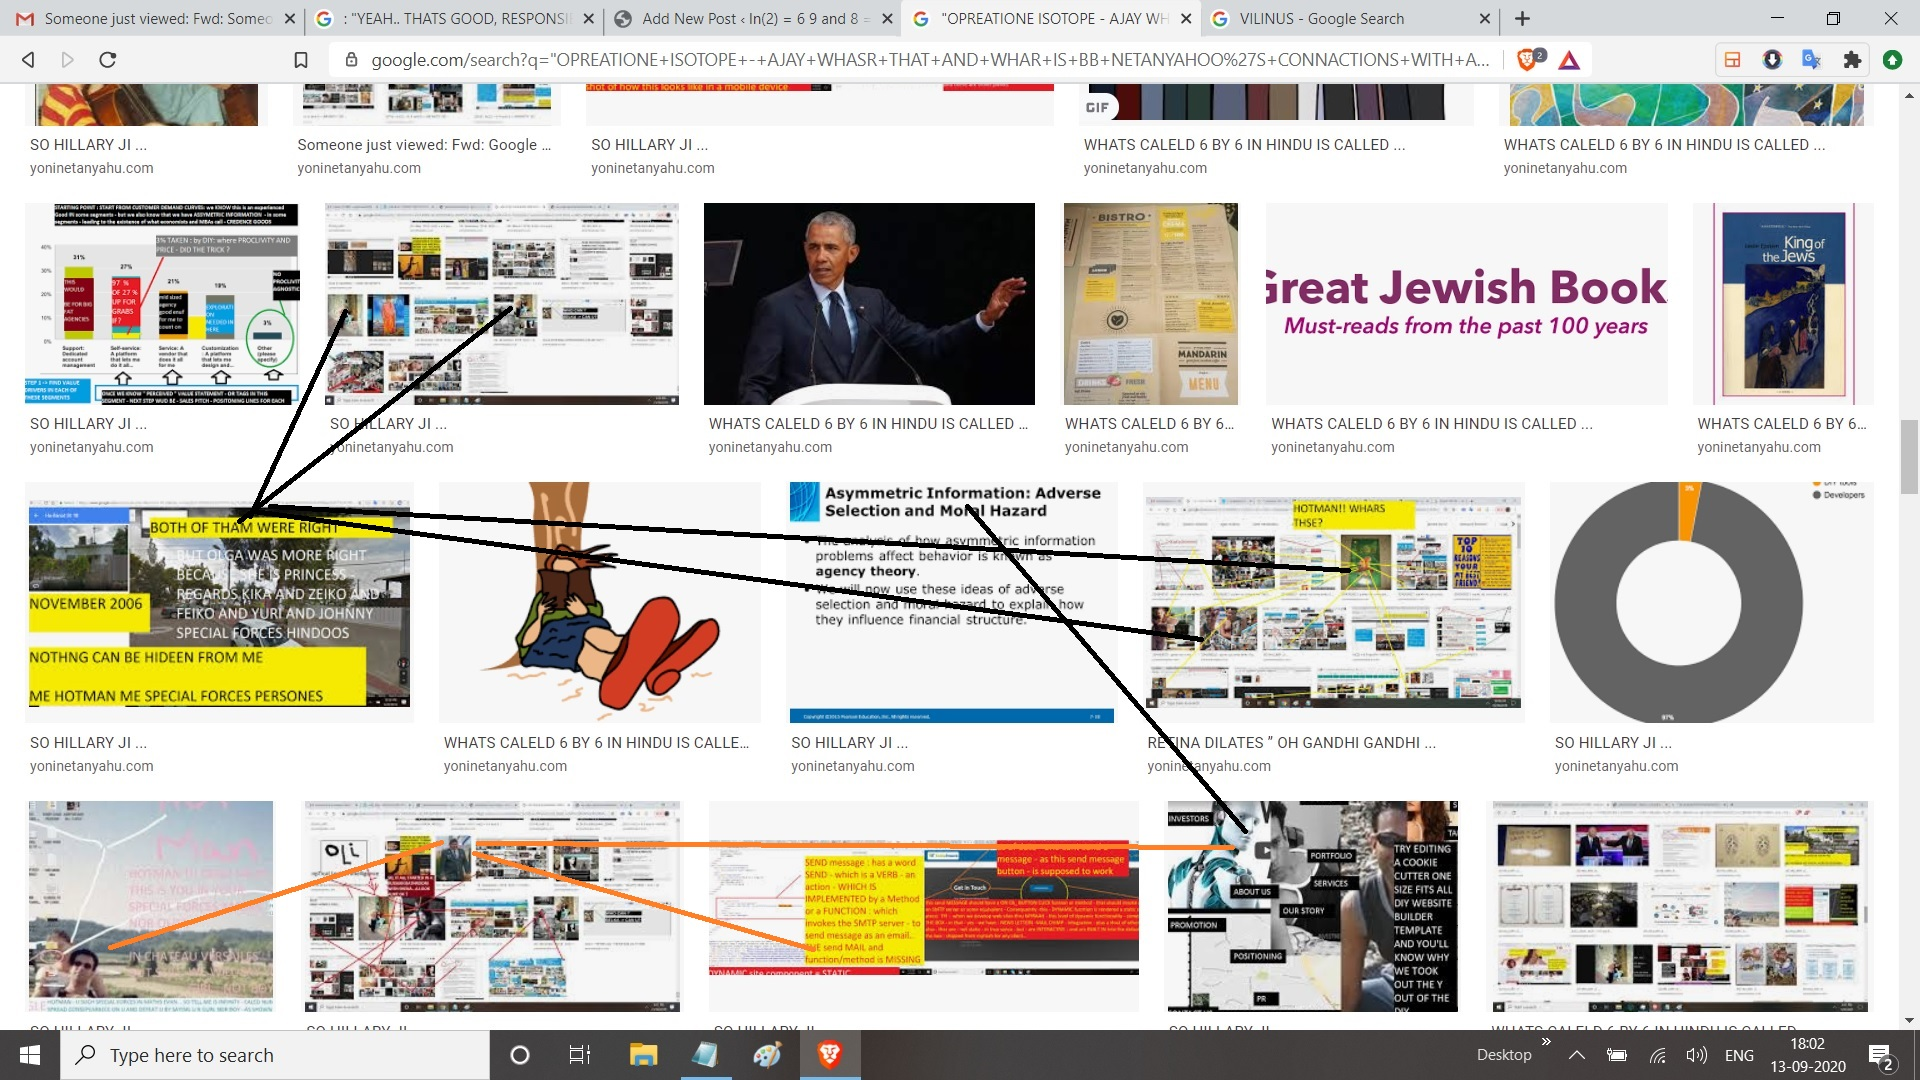 OPREATIONE ISOTOPE - AJAY WHASR THAT AND WHAR IS BB NETANYAHOO'S CONNACTIONS WITH ALL THIES E WAS BB NETANAYHOO ACTING SELLEEY IN THAT TELL ME ALL I ASKED REGARDS HOTMAN SPECIAL FORCES SAIRELIES